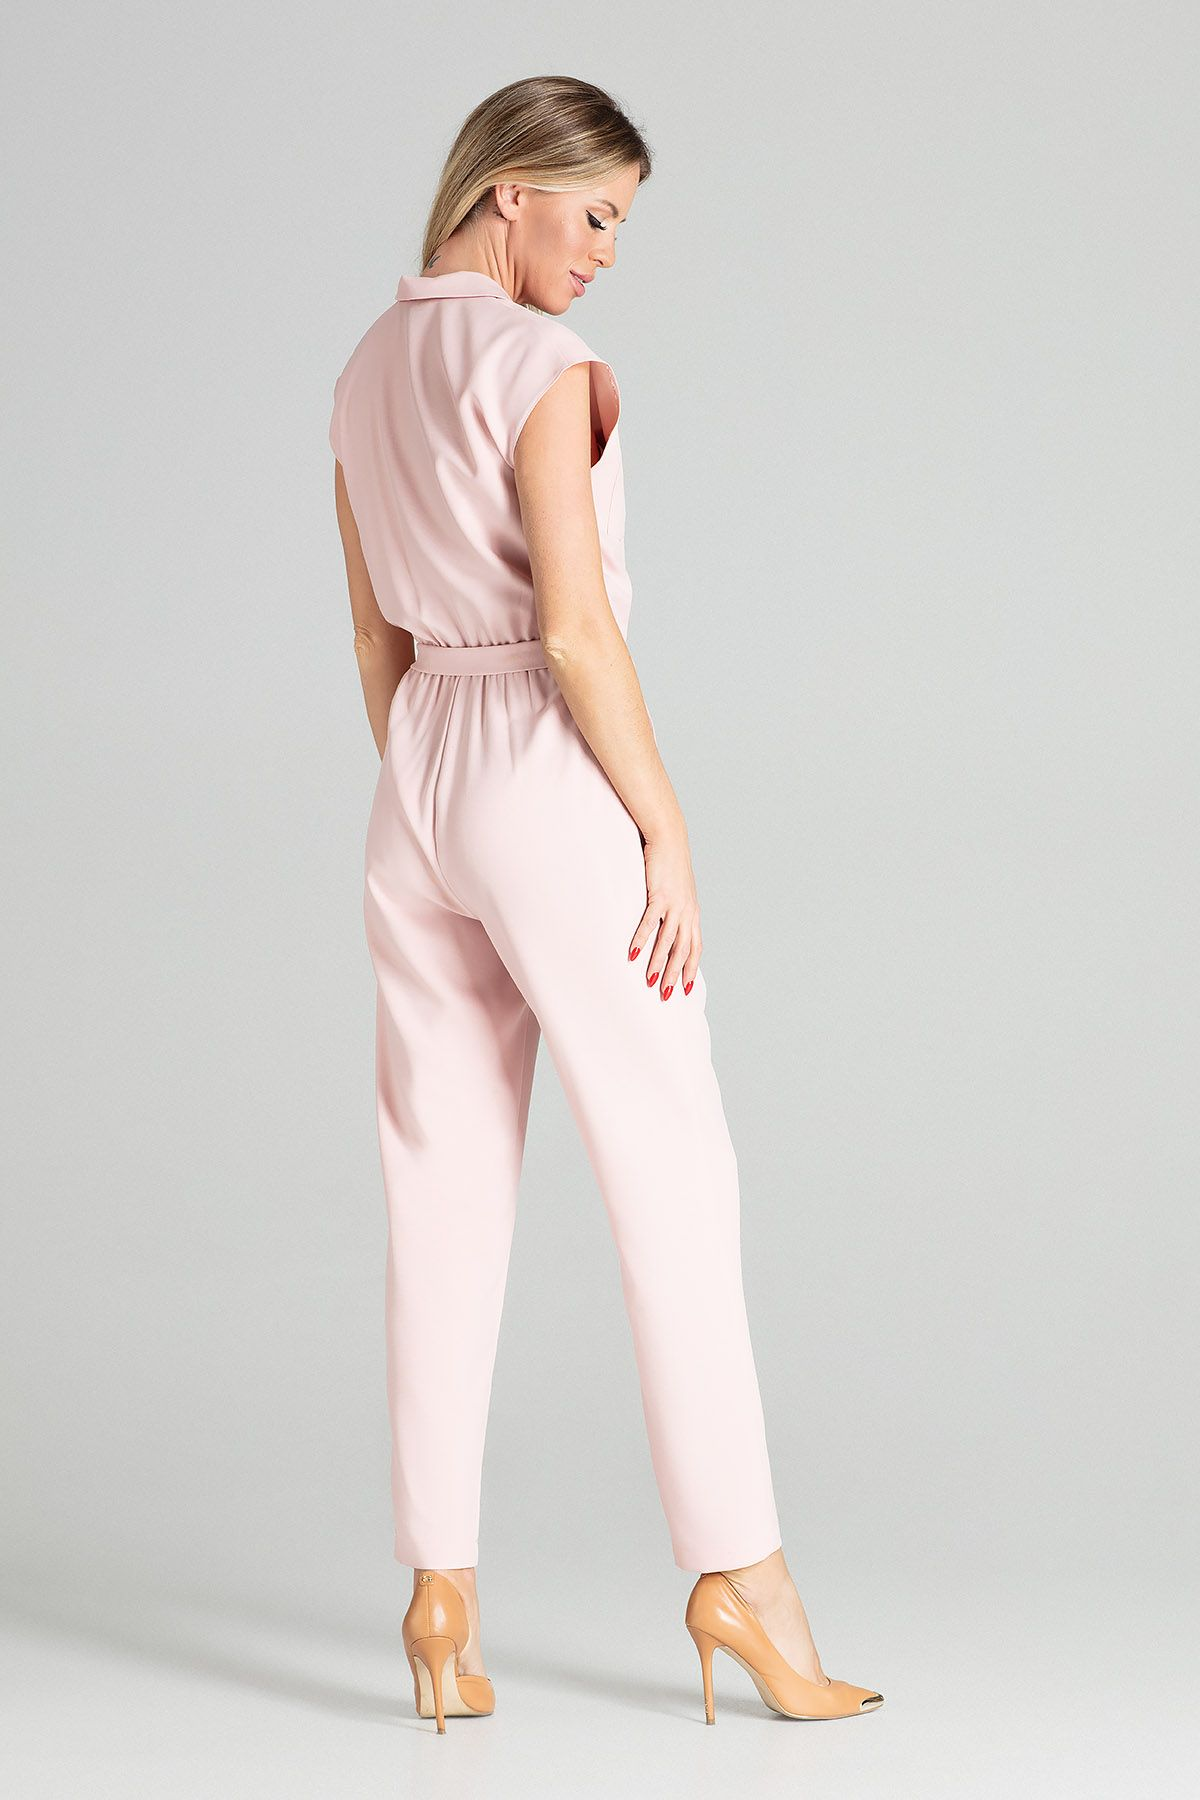 Pink Sleeveless Jumpsuit With Falling Shoulders